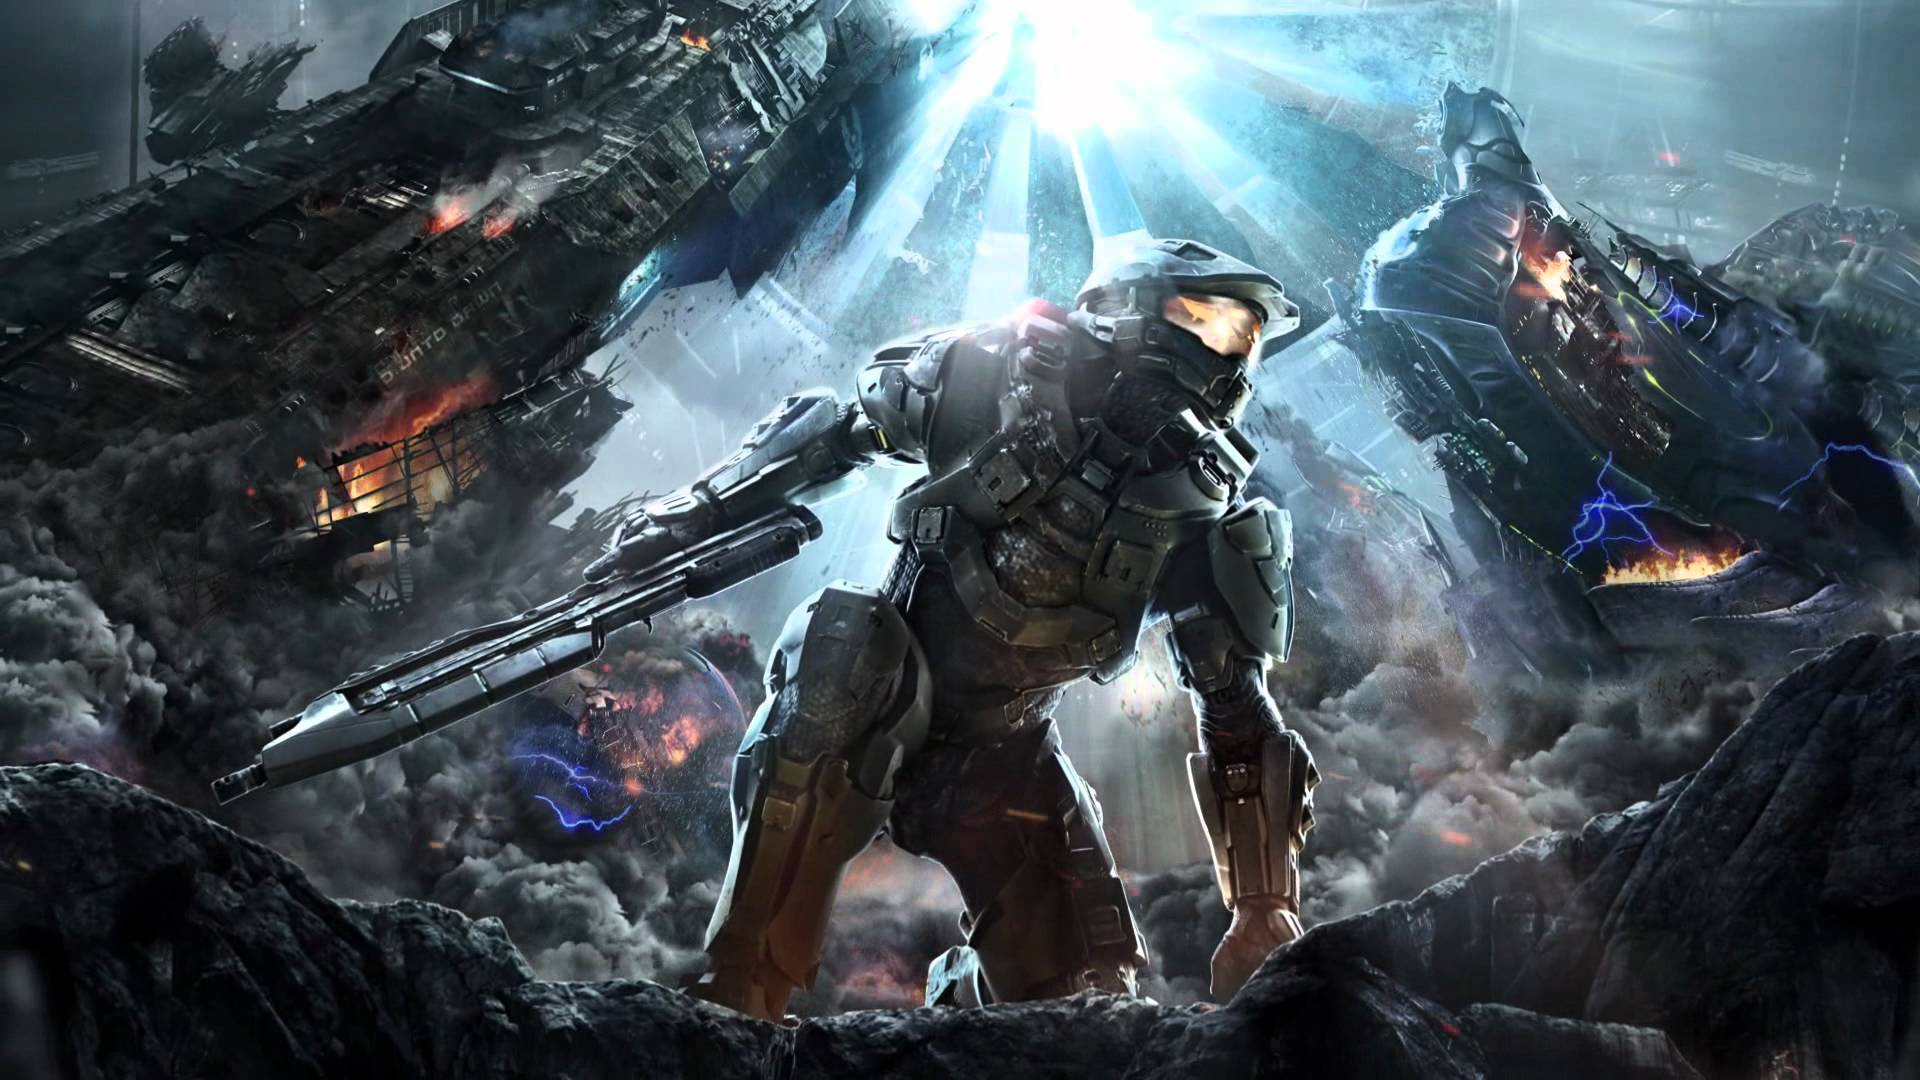 Halo 4 - Halo 4 pictures ...